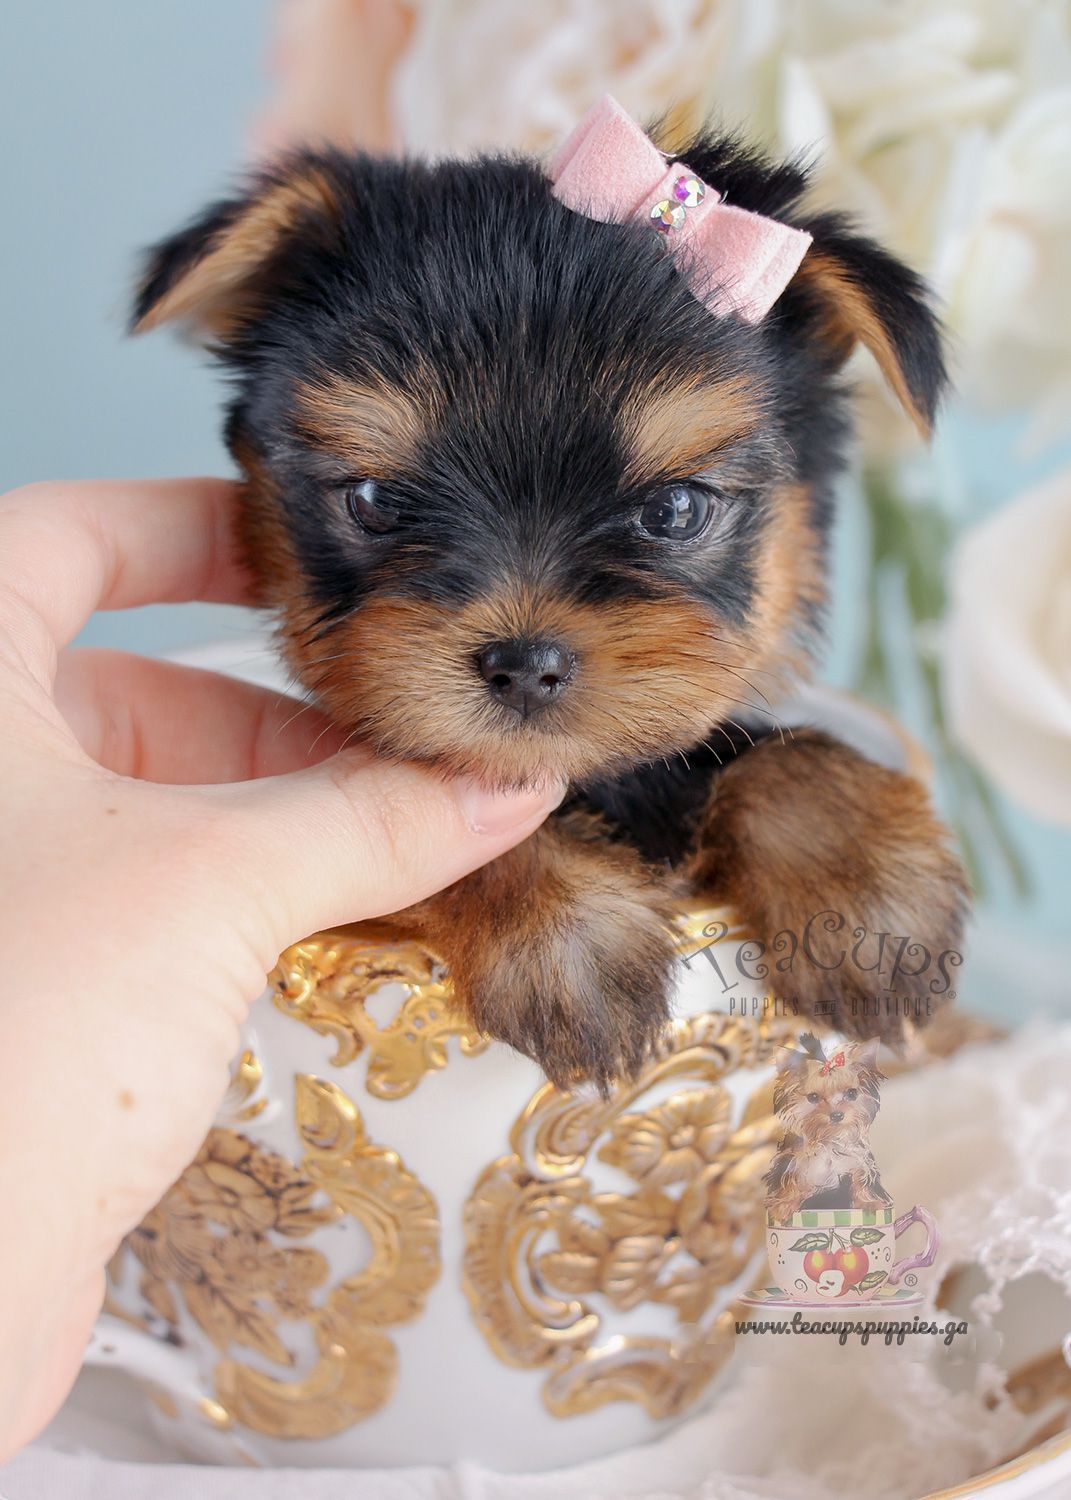 Teacup Yorkie Puppies Known As Yorkshire Terrier Available Now For Re Homing If You Need A Best F Yorkshire Terrier Puppies Yorkie Puppy Cute Dogs And Puppies